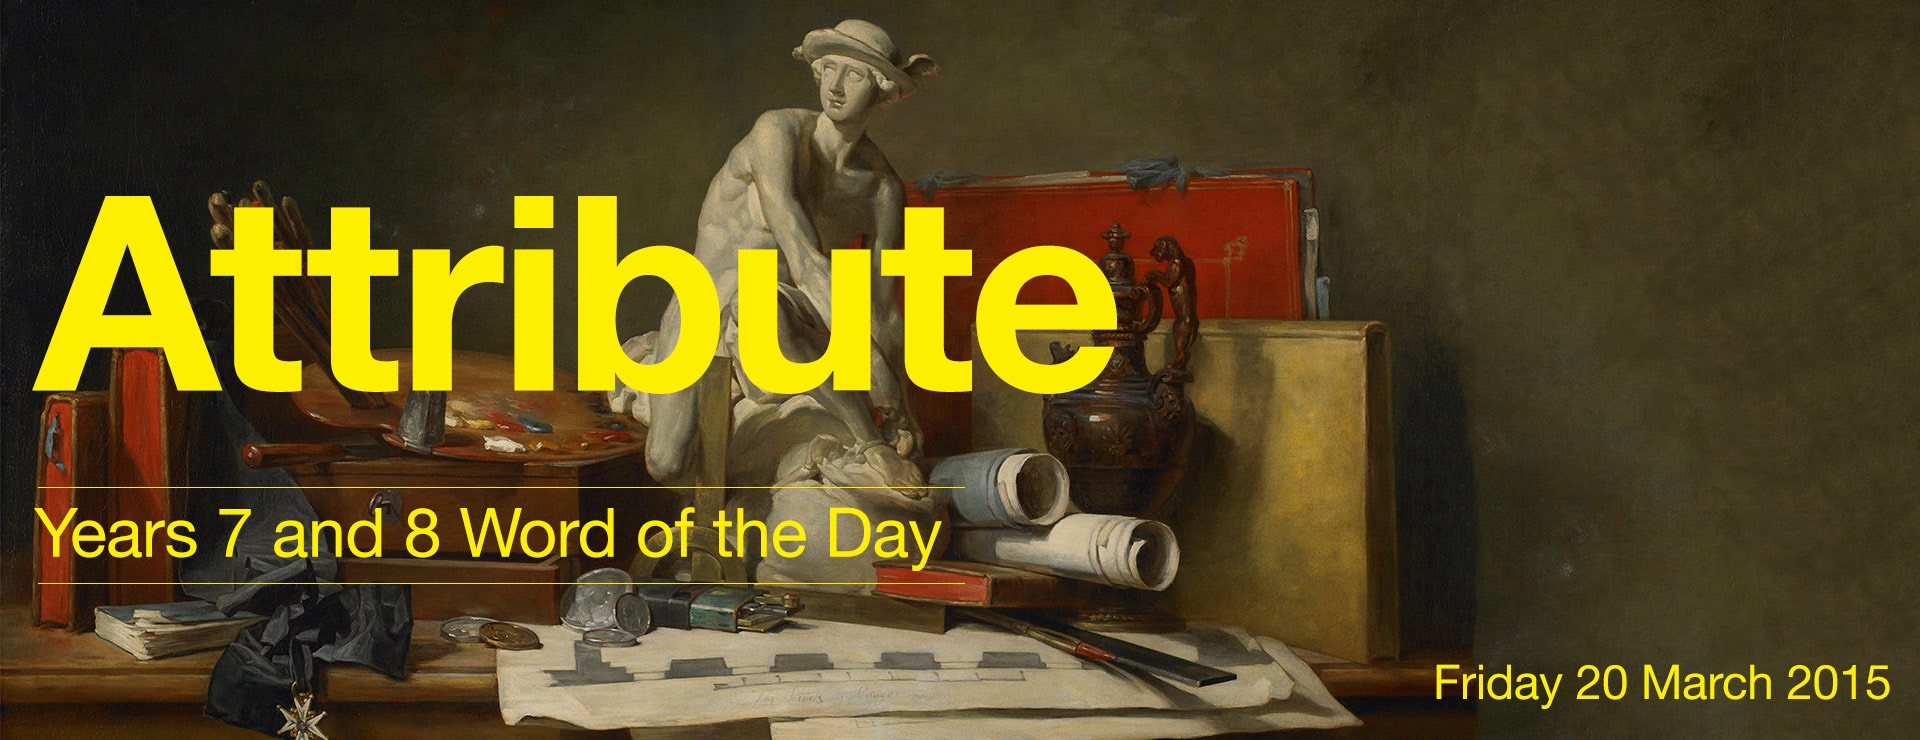 Word-of-the-Day-100@2x.jpg